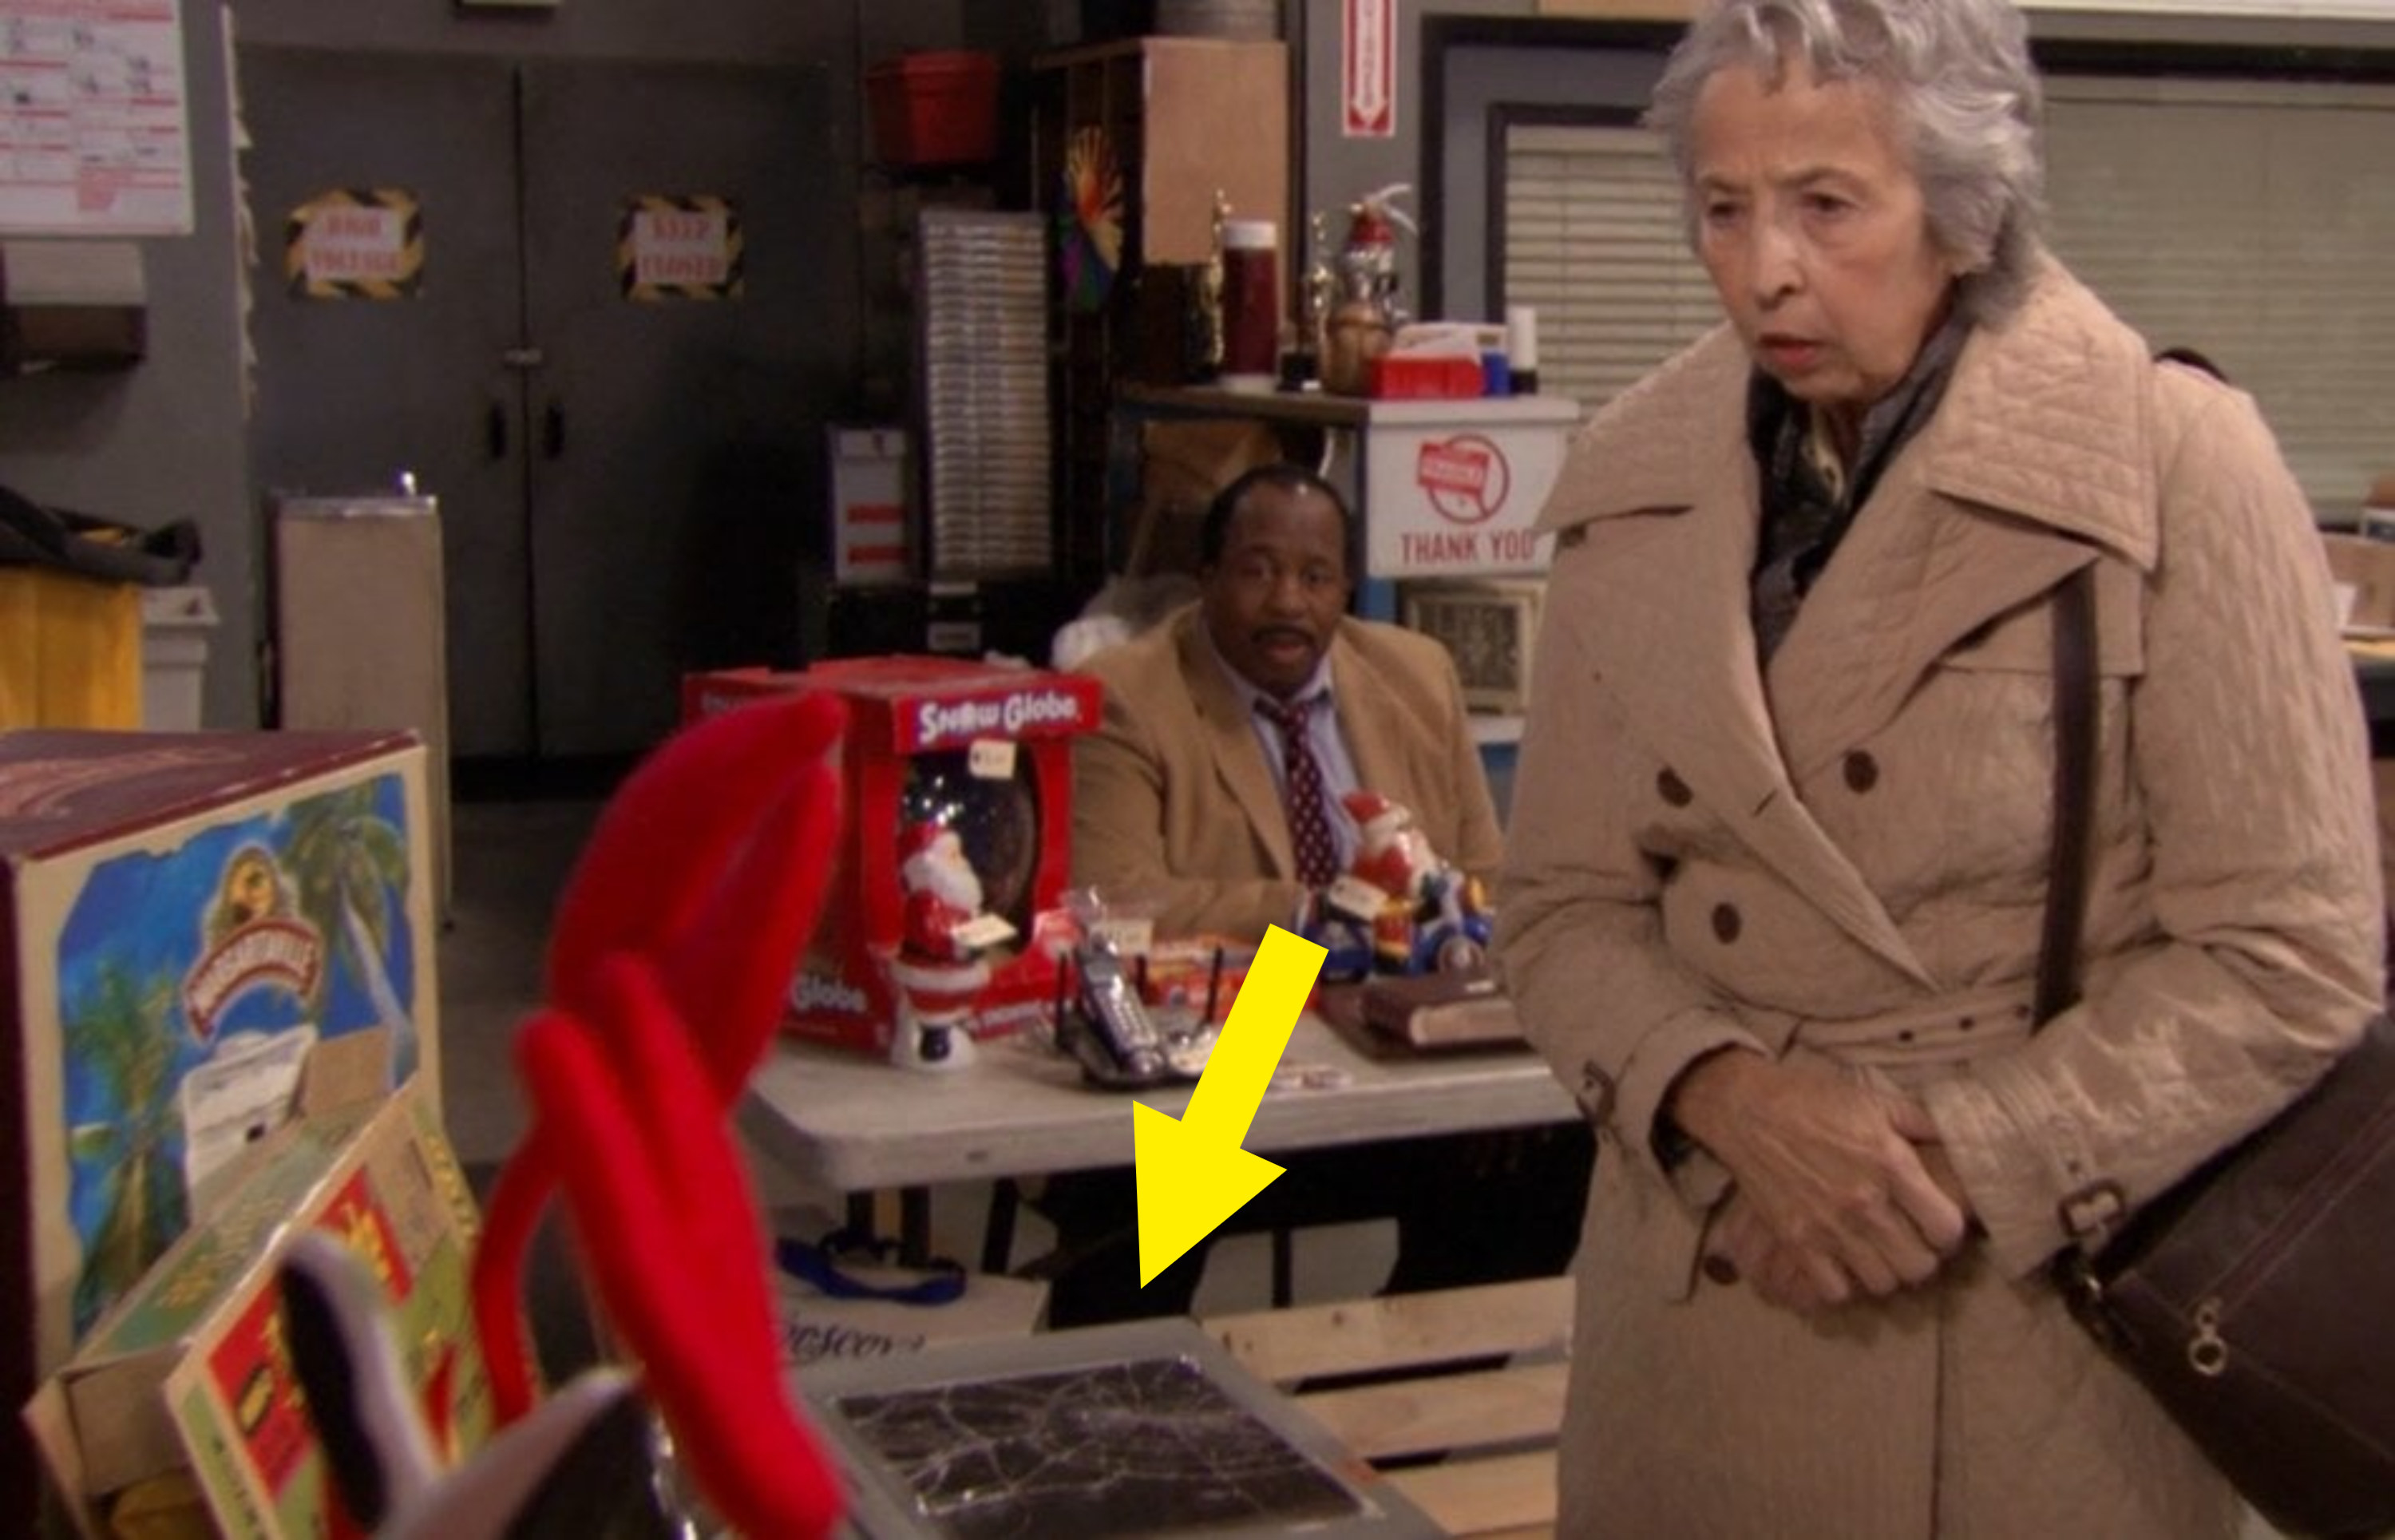 a random woman looking at Michael's garage sale objects